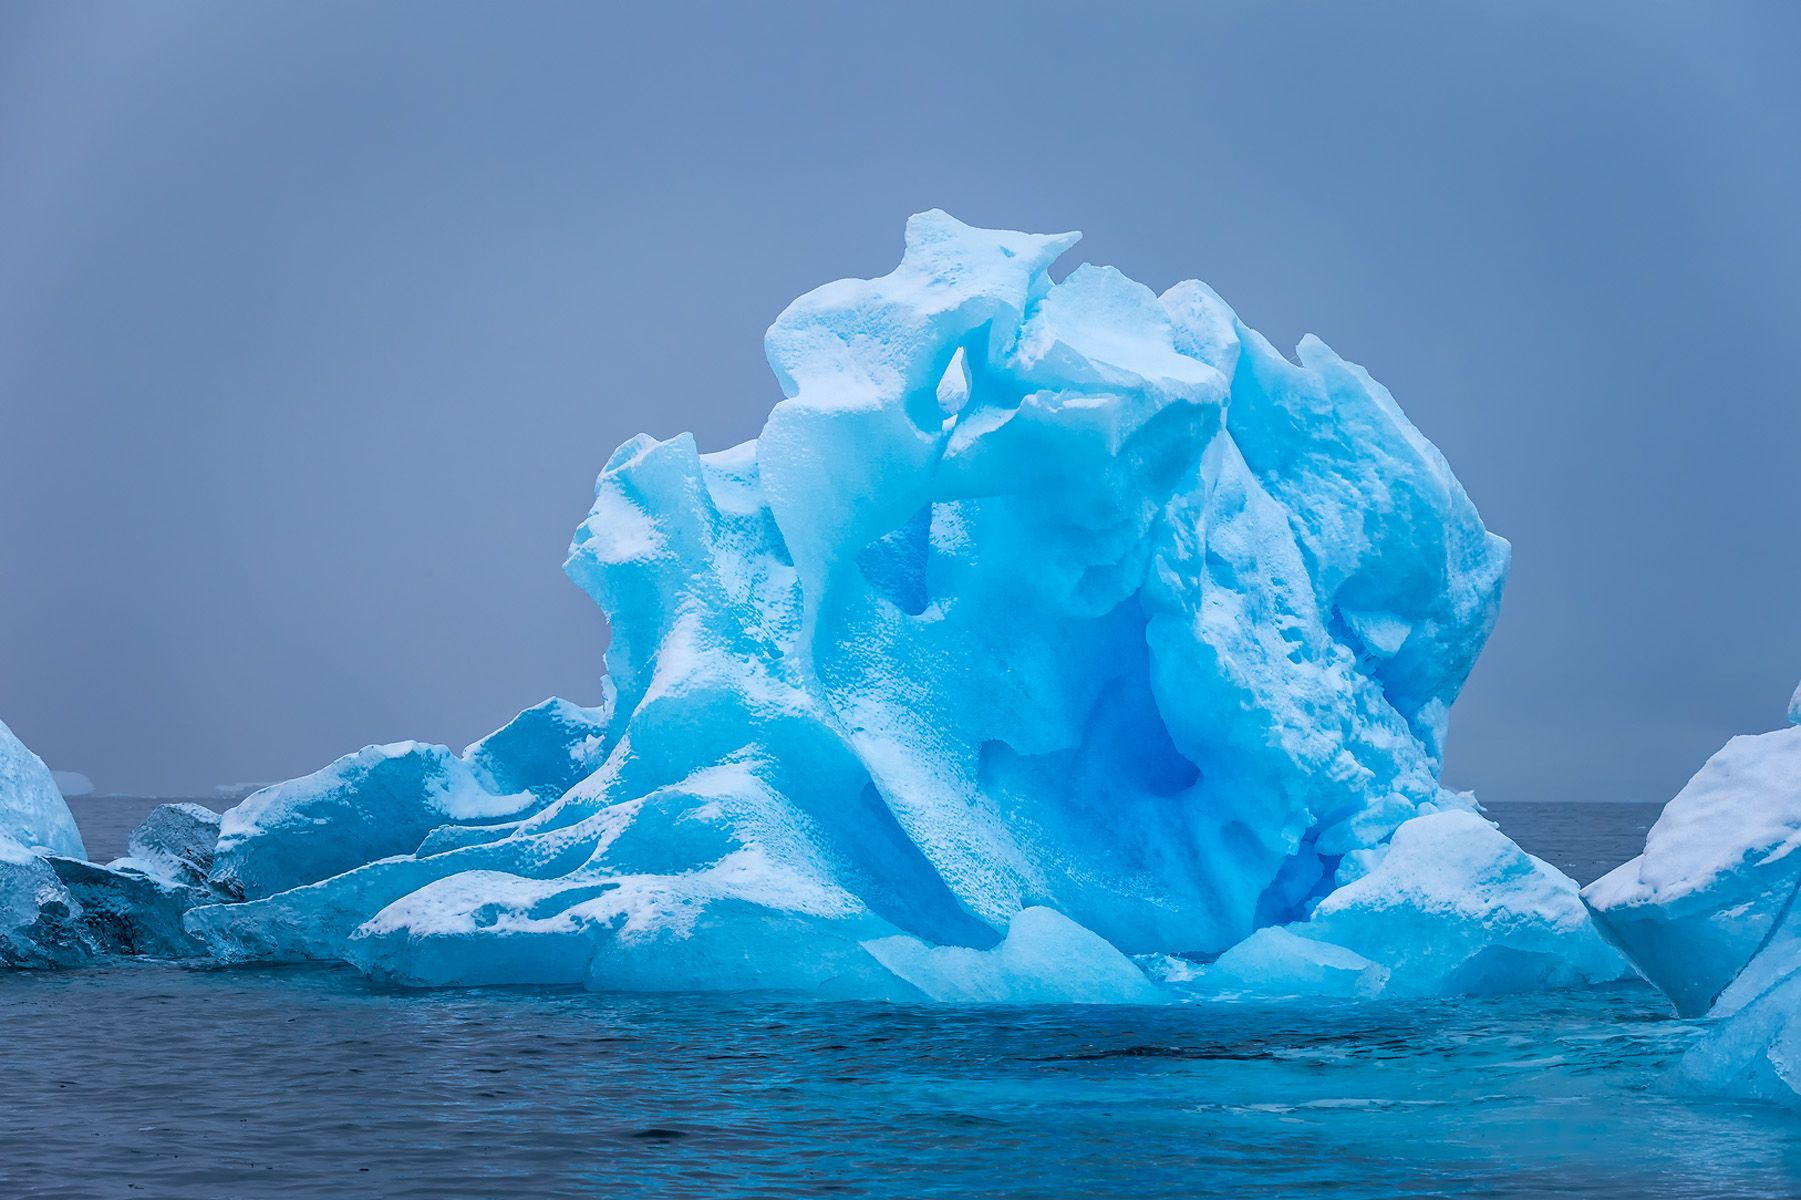 Blue ice with snow cover_B8R6476-Cierva Cove, Hughes Bay, Antarctica.jpg